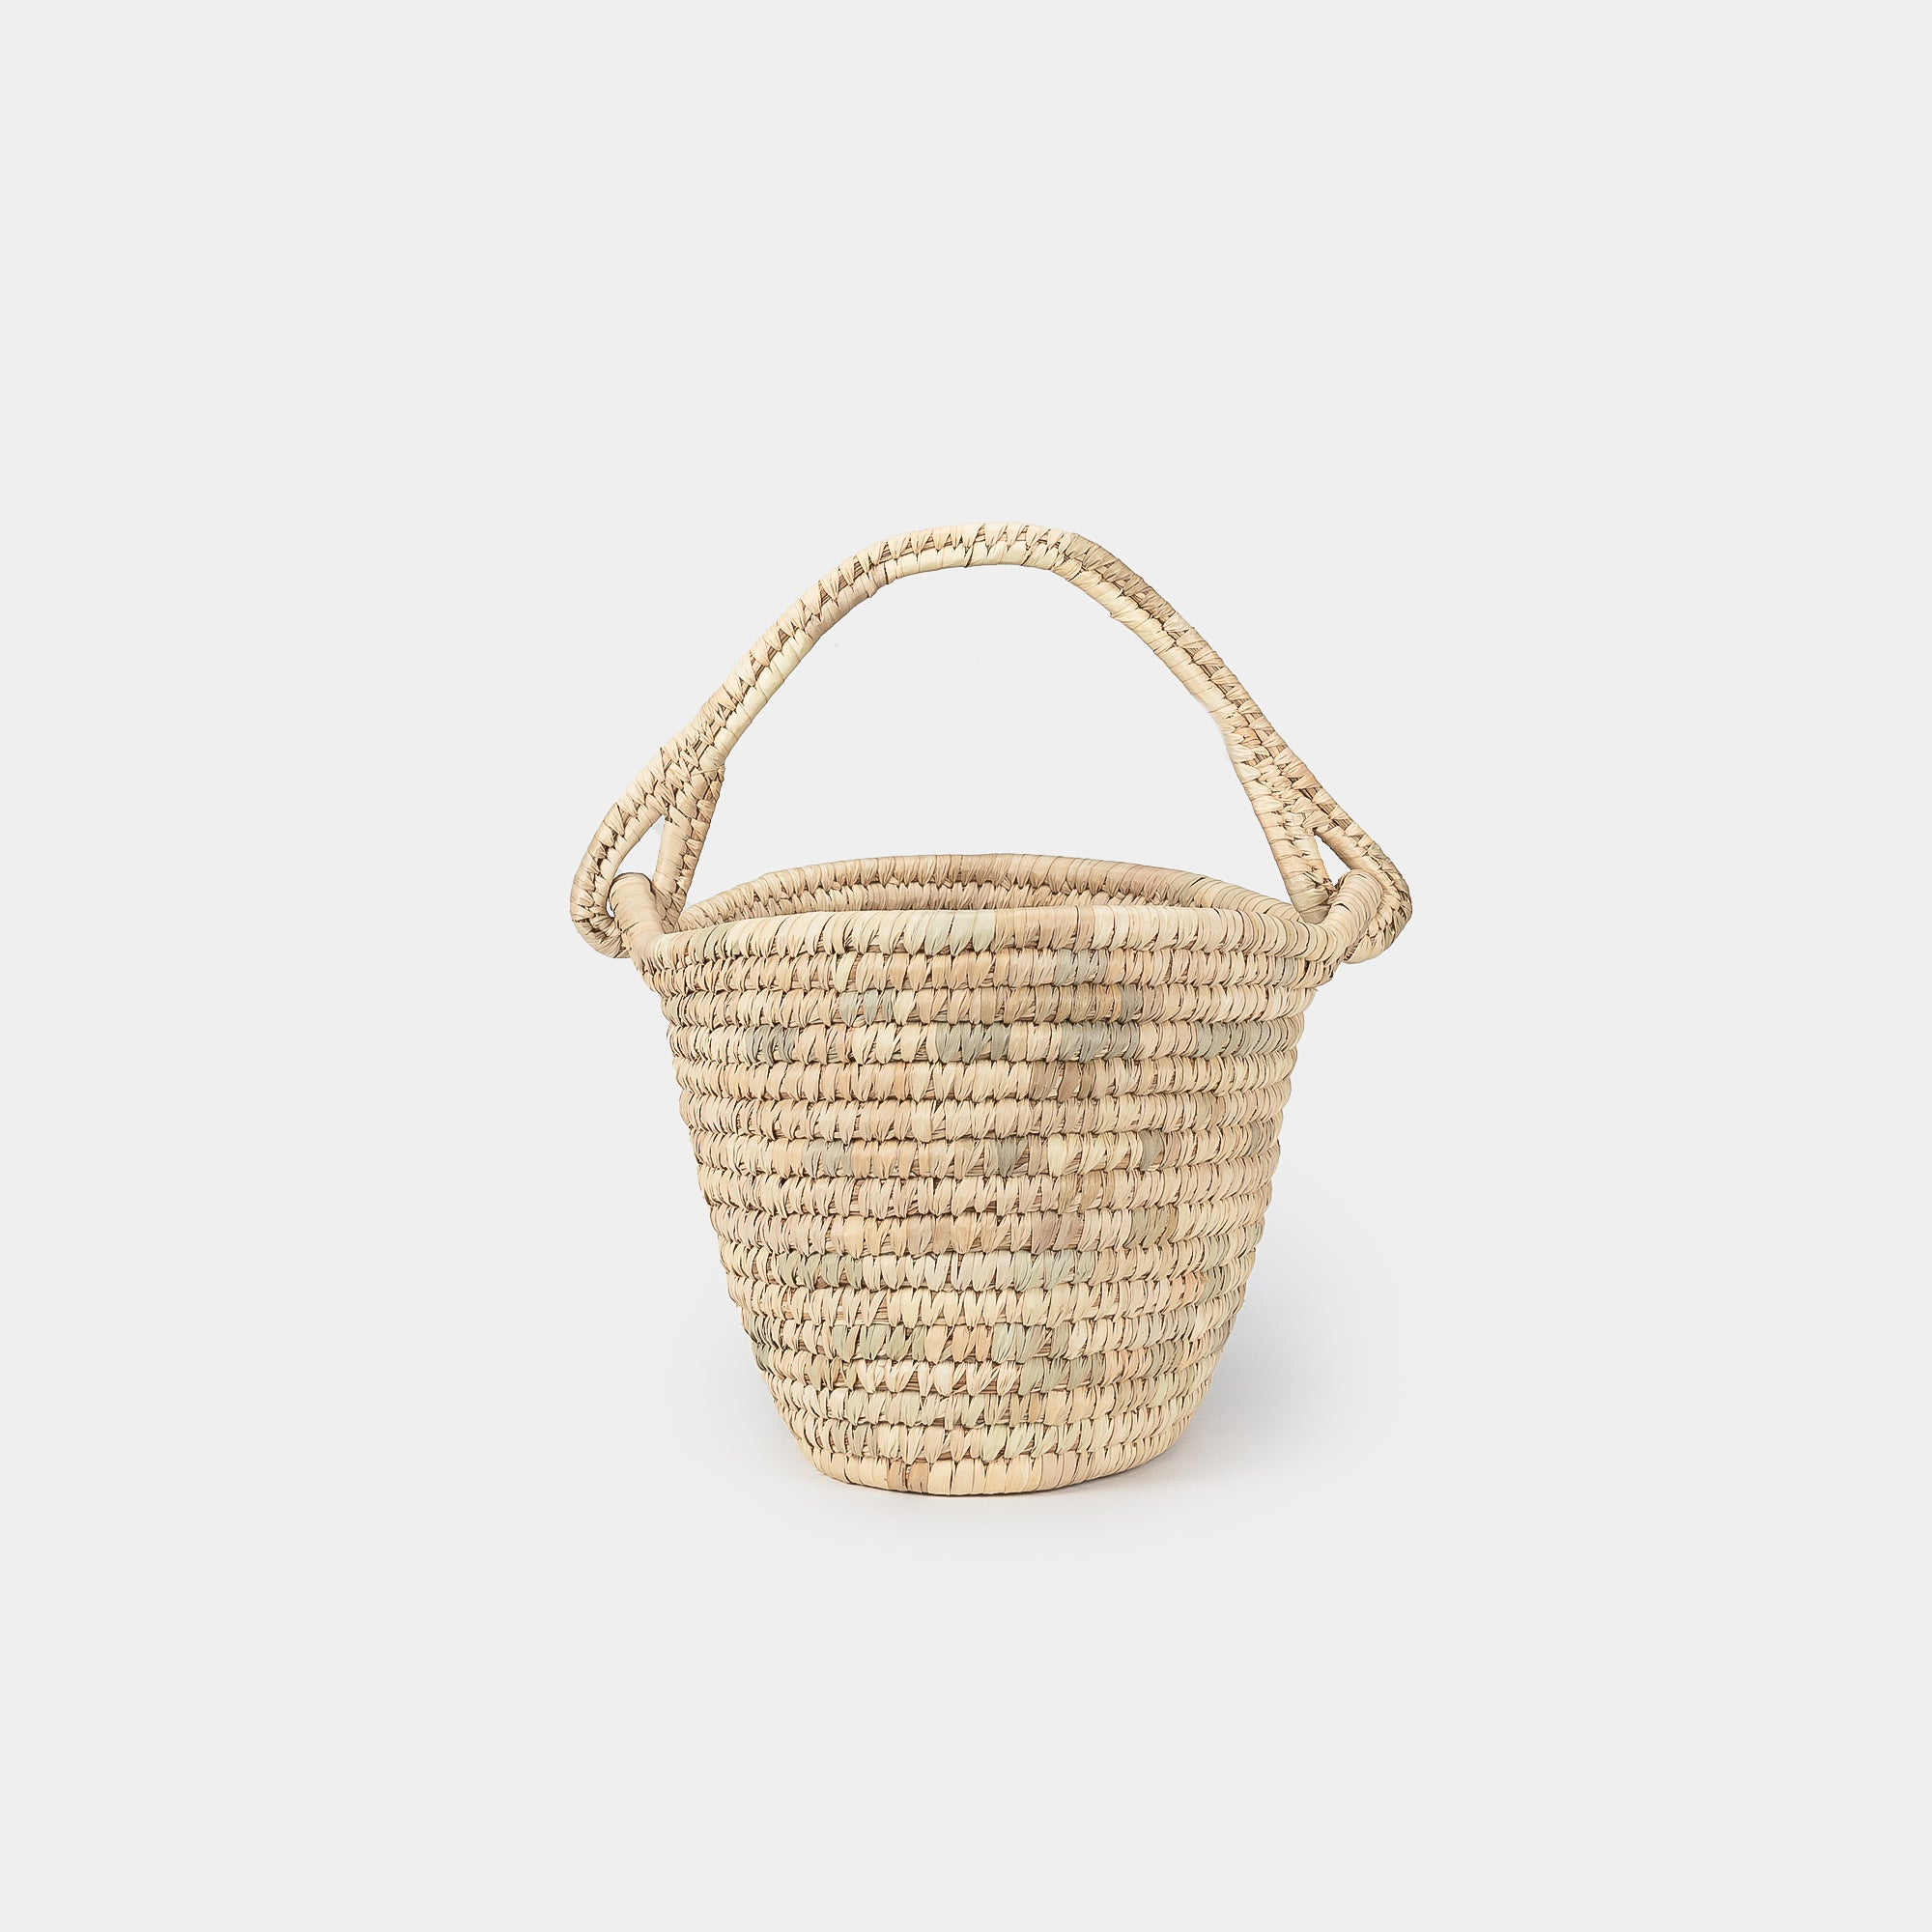 Oval Hand Woven Basket w/ Handle